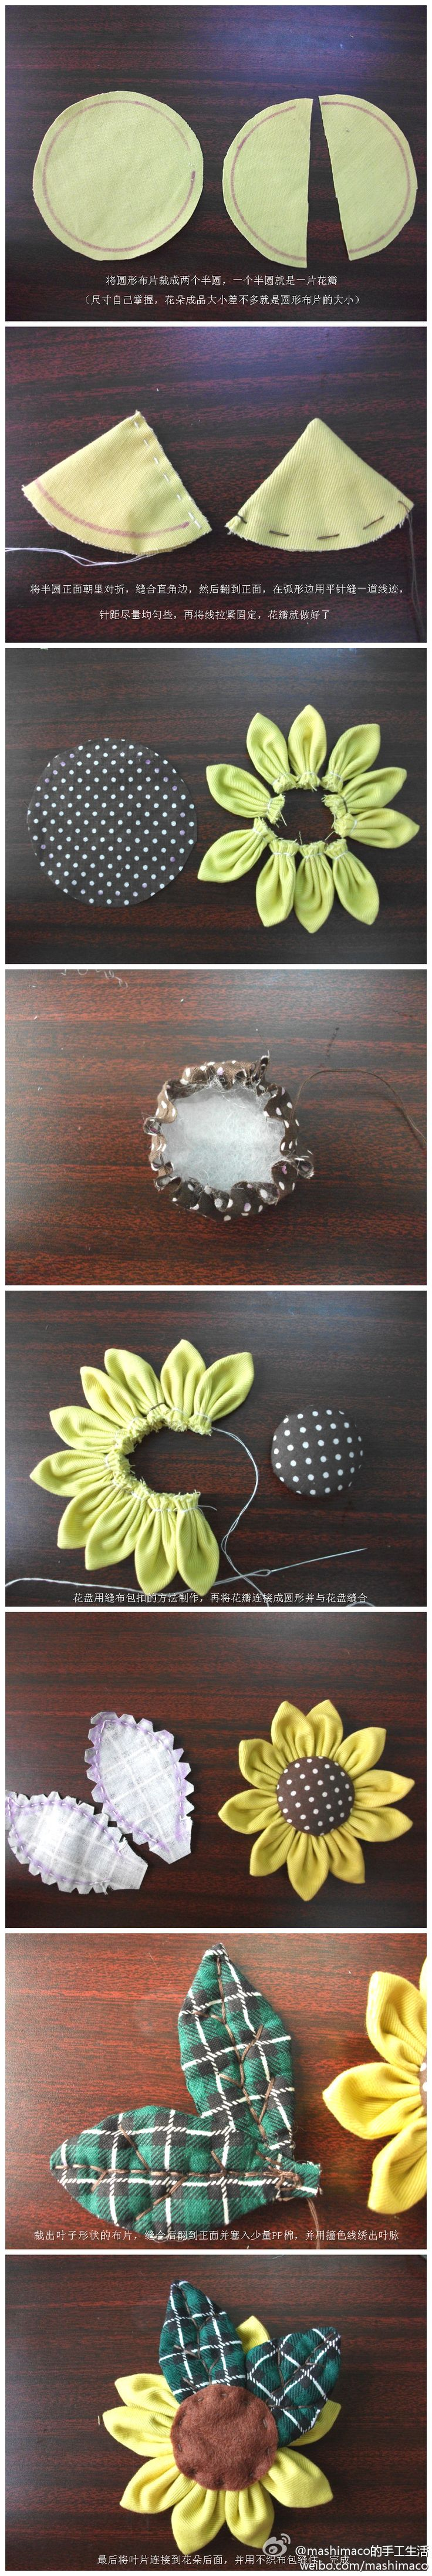 best crafty images on pinterest good ideas hand crafts and